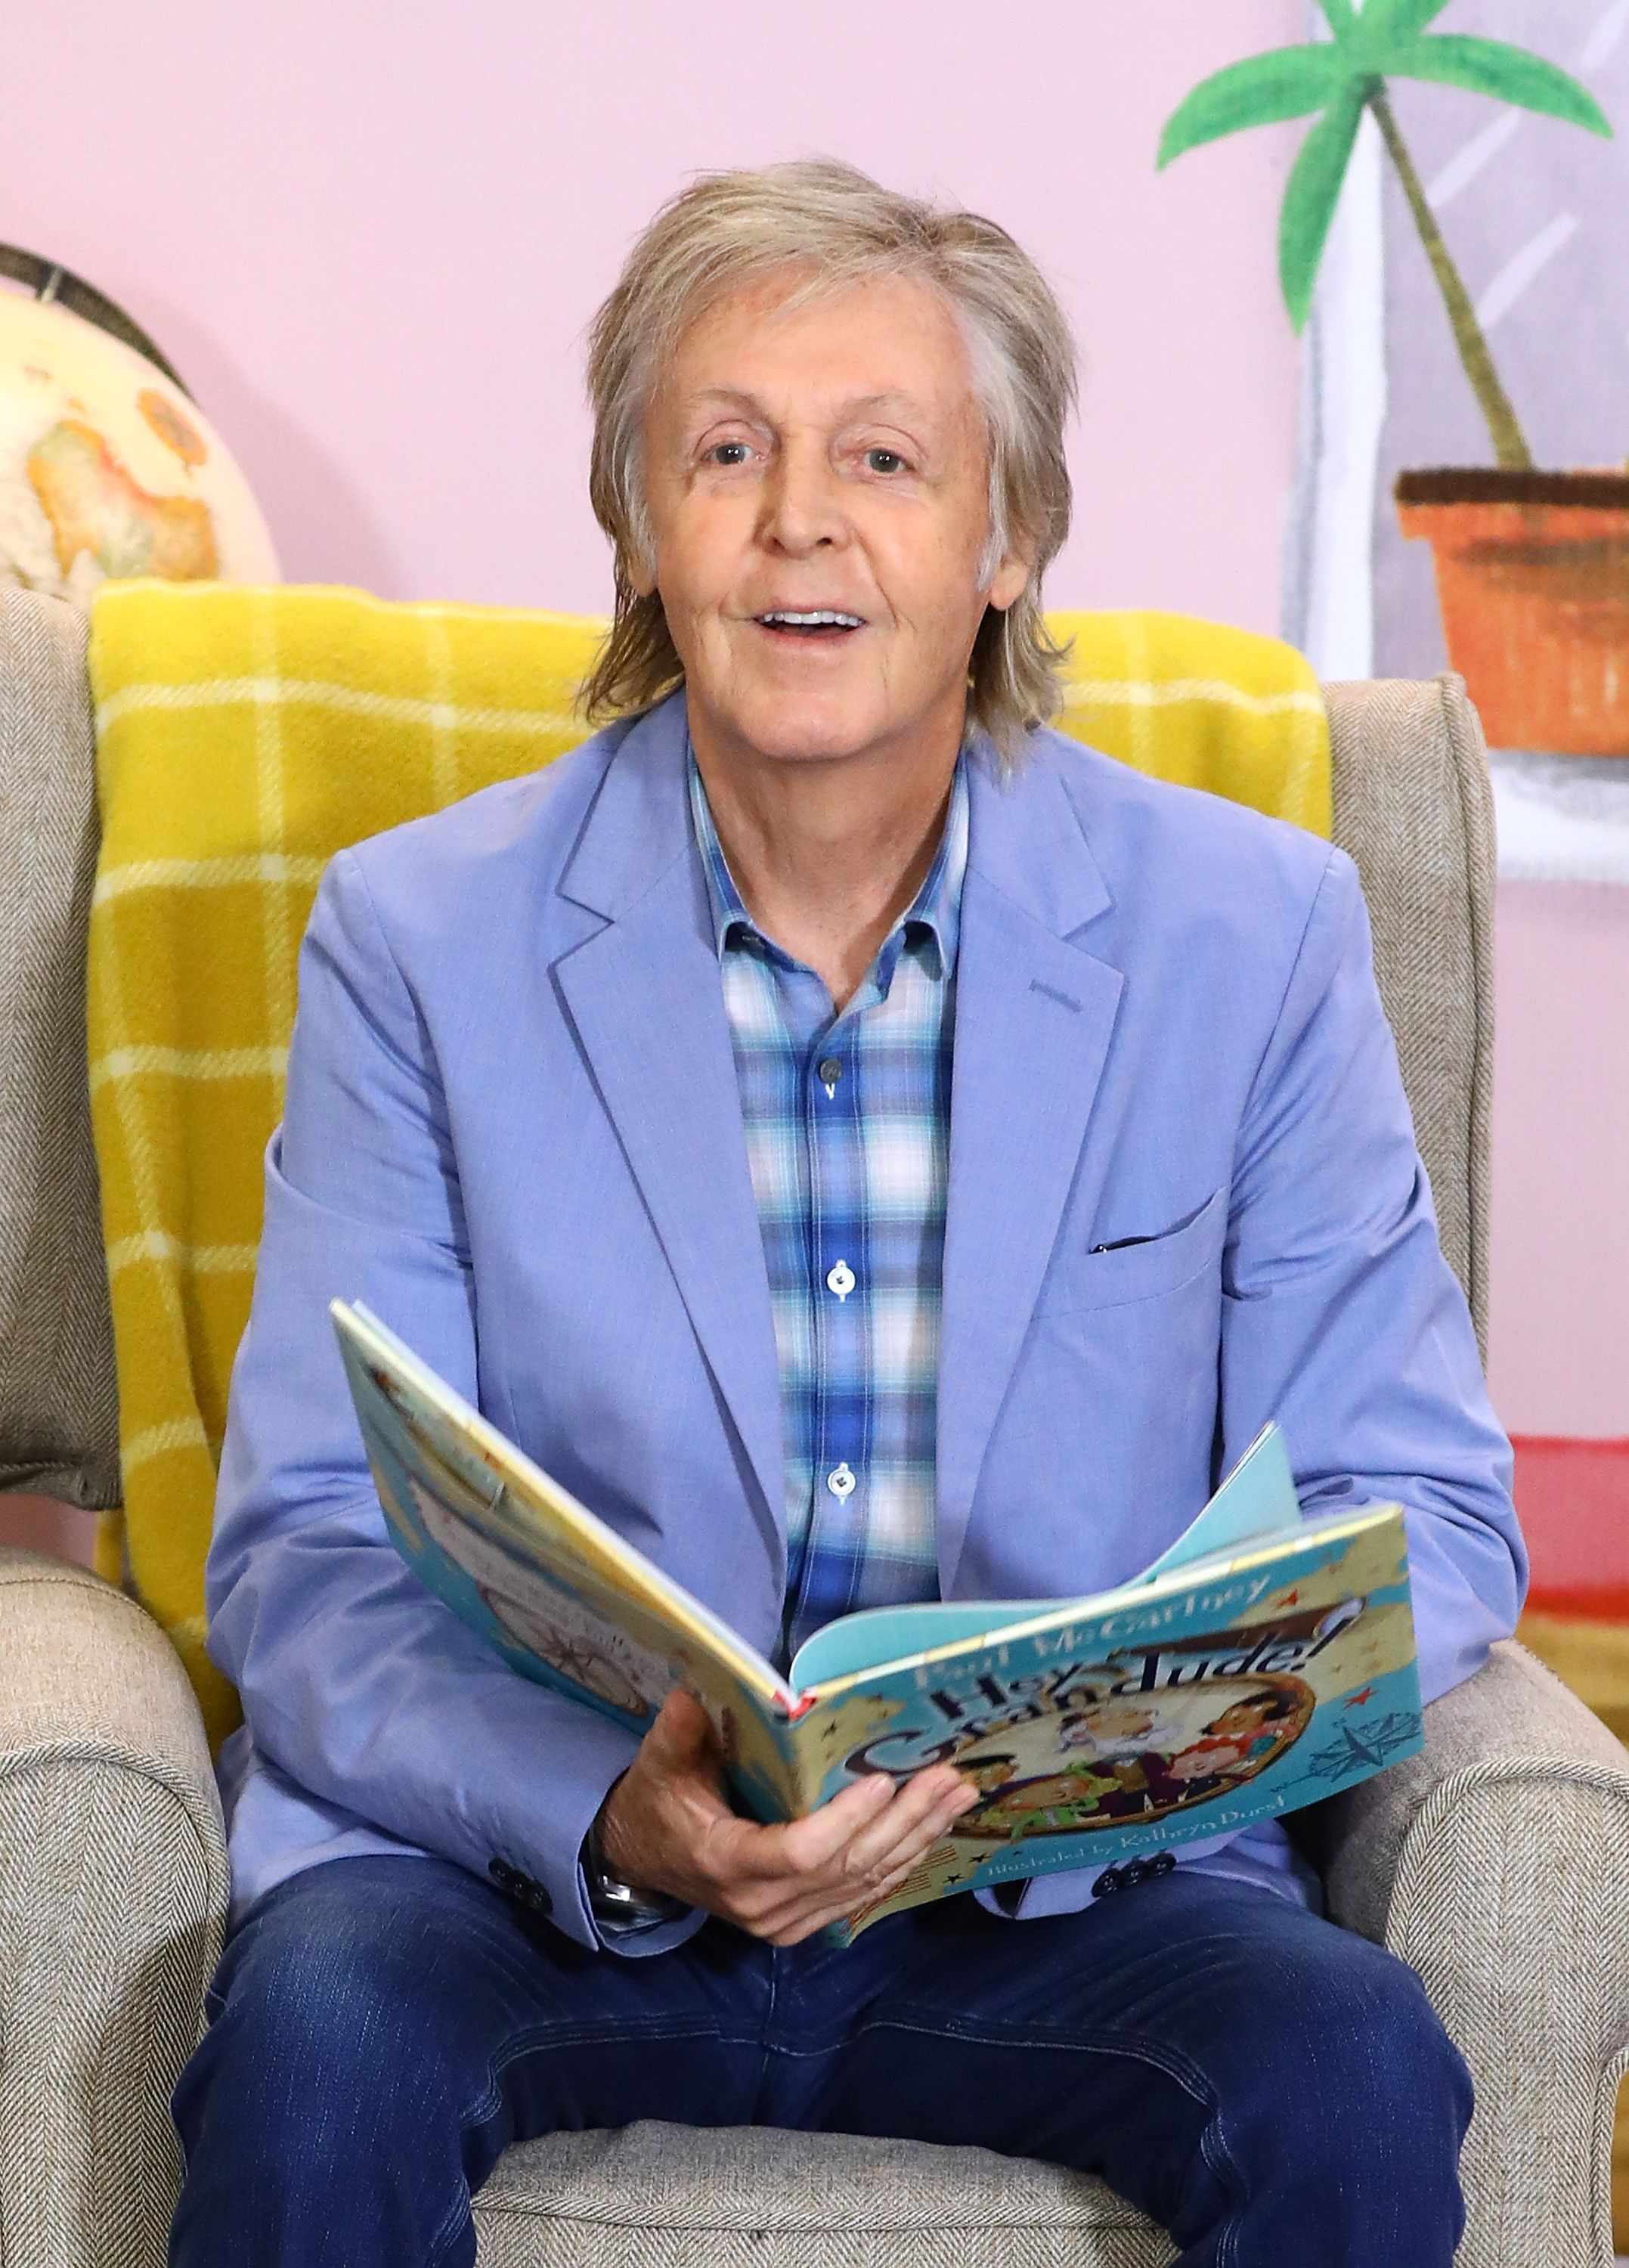 """Paul McCartney reading to children at the """"Hey Grandude!"""" book signing on September 06, 2019, in London, England   Photo: Tim P. Whitby/Getty Images"""